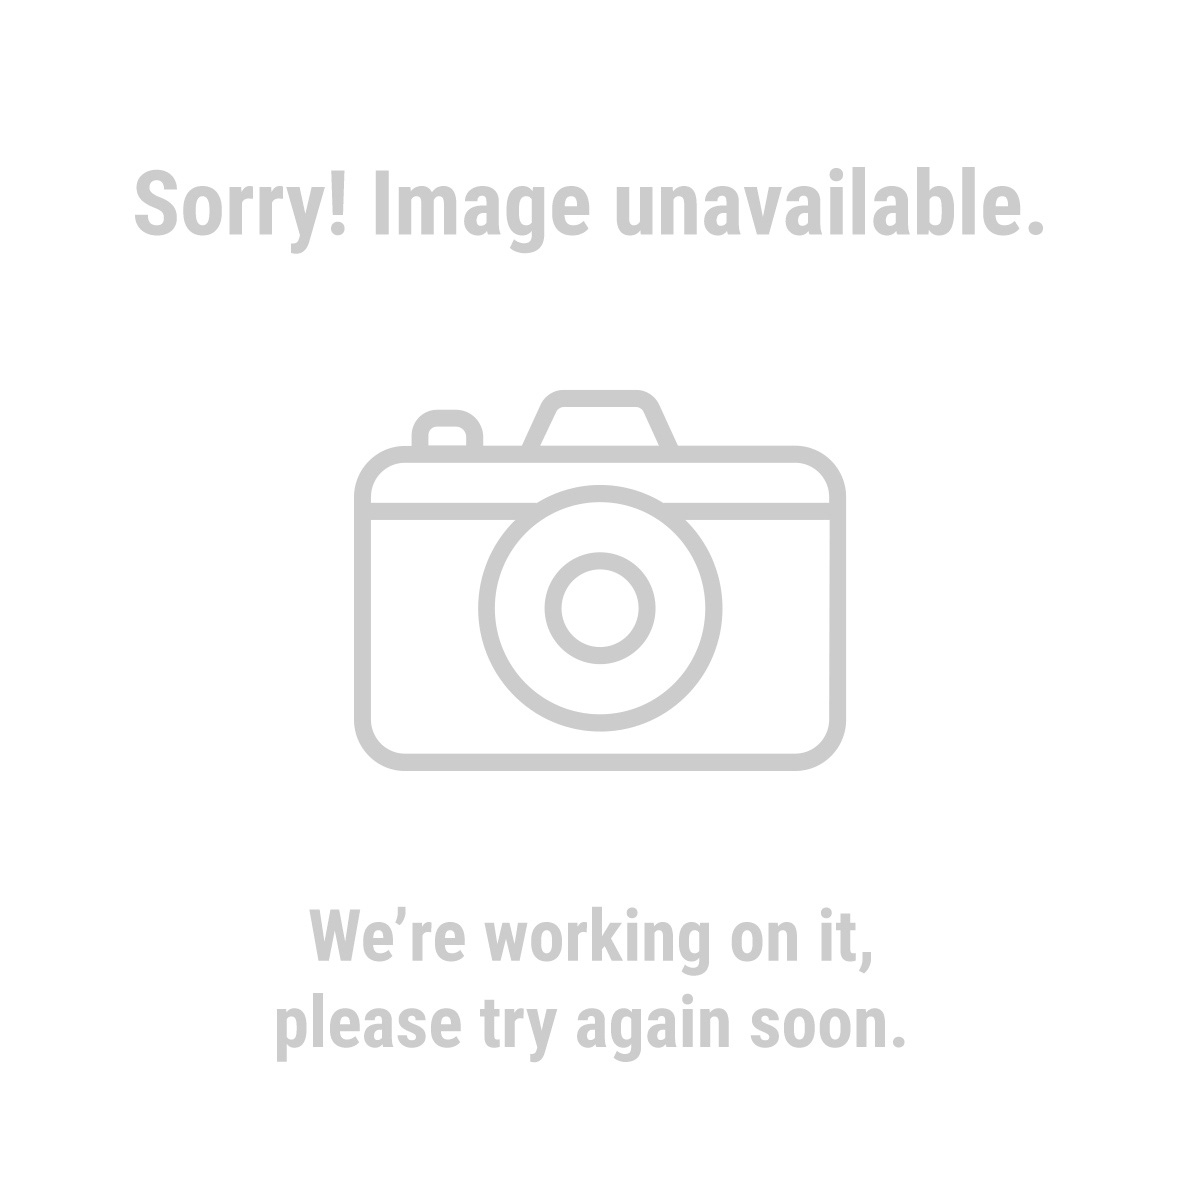 Badland Winches 61383 3500 lb. ATV/Utility Electric Winch with Automatic Load-Holding Brake